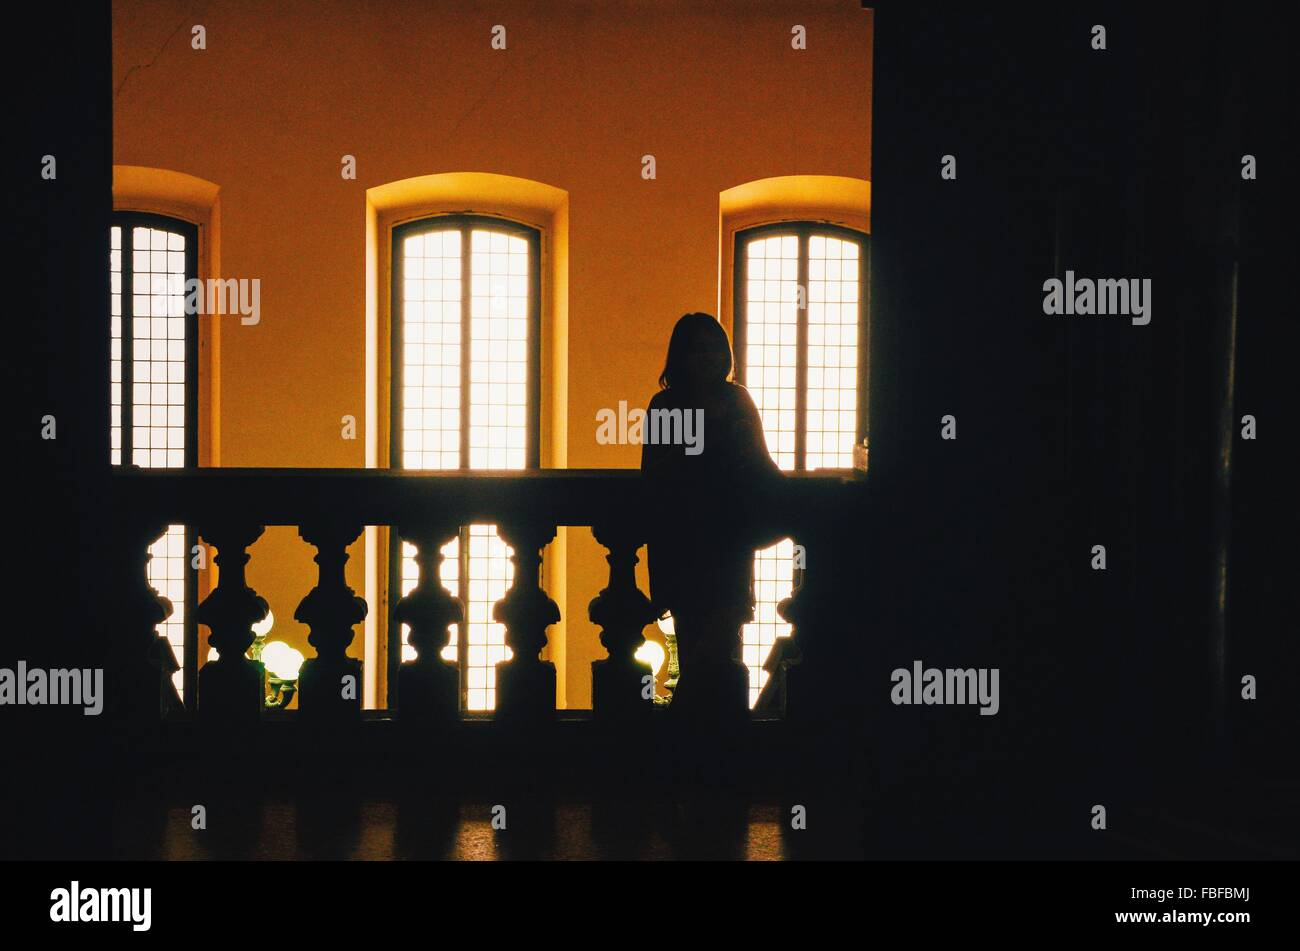 Silhouette Person Standing Against Windows - Stock Image